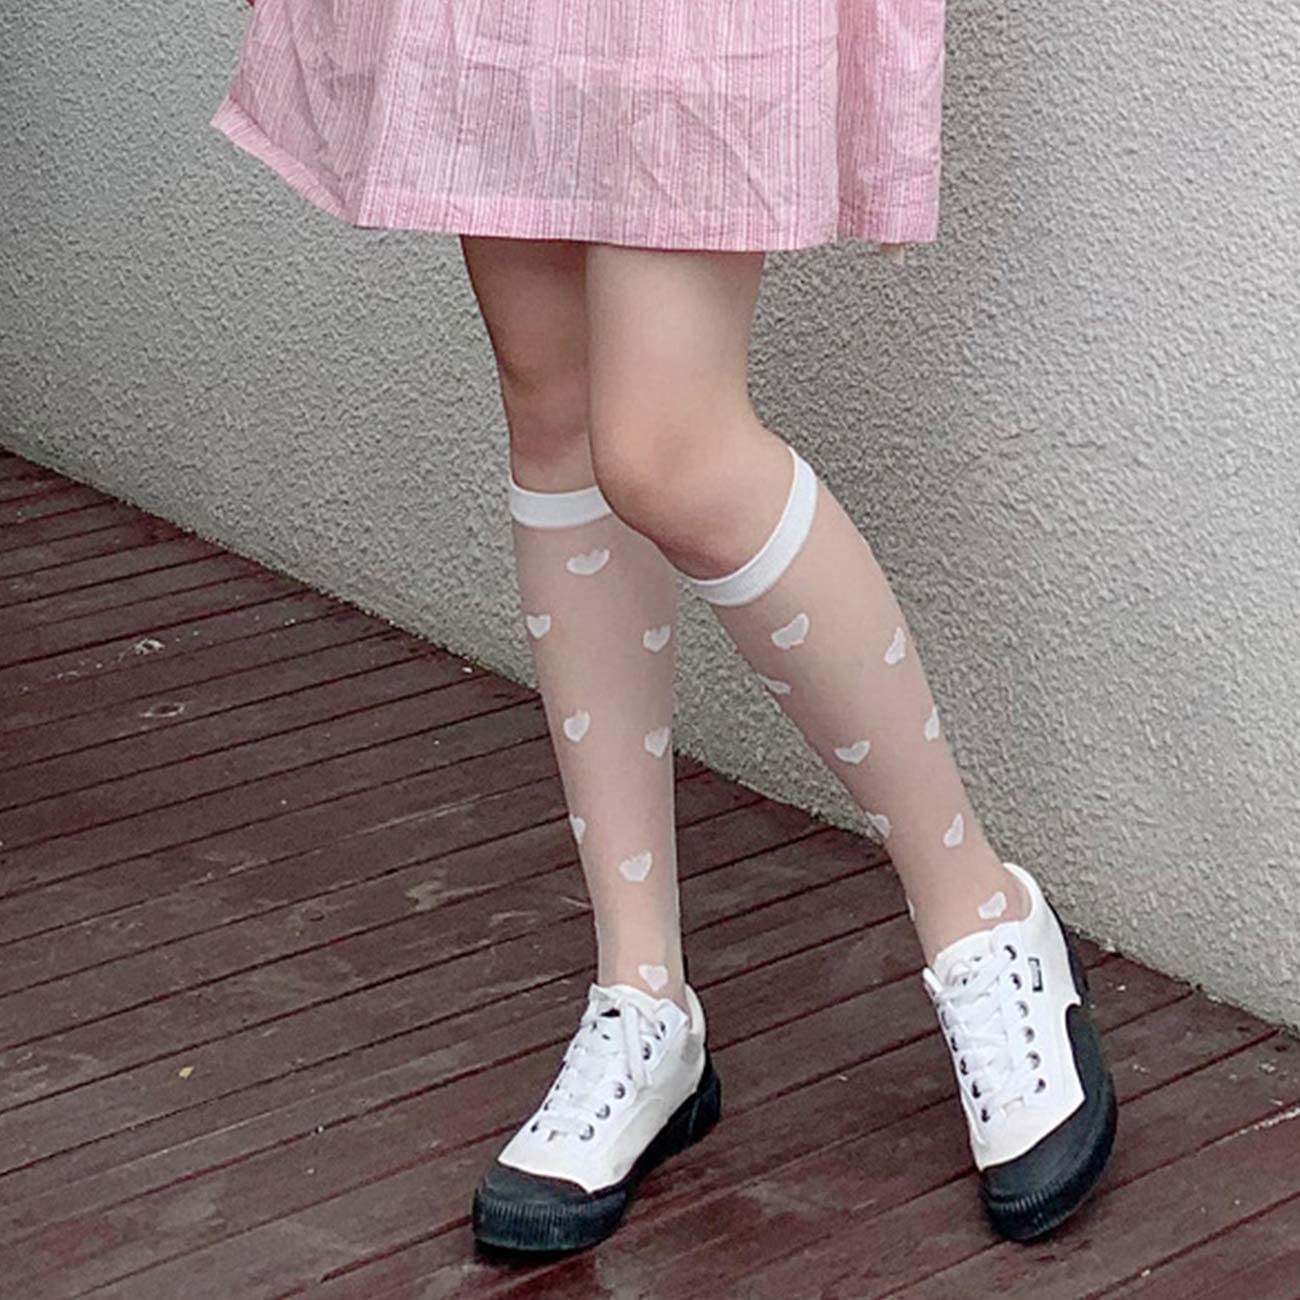 Womens Girls Sheer Nylon Lace Fishnet Knee High Socks Ultrathin Silly Stylish Crystal Mesh See Through Stocking